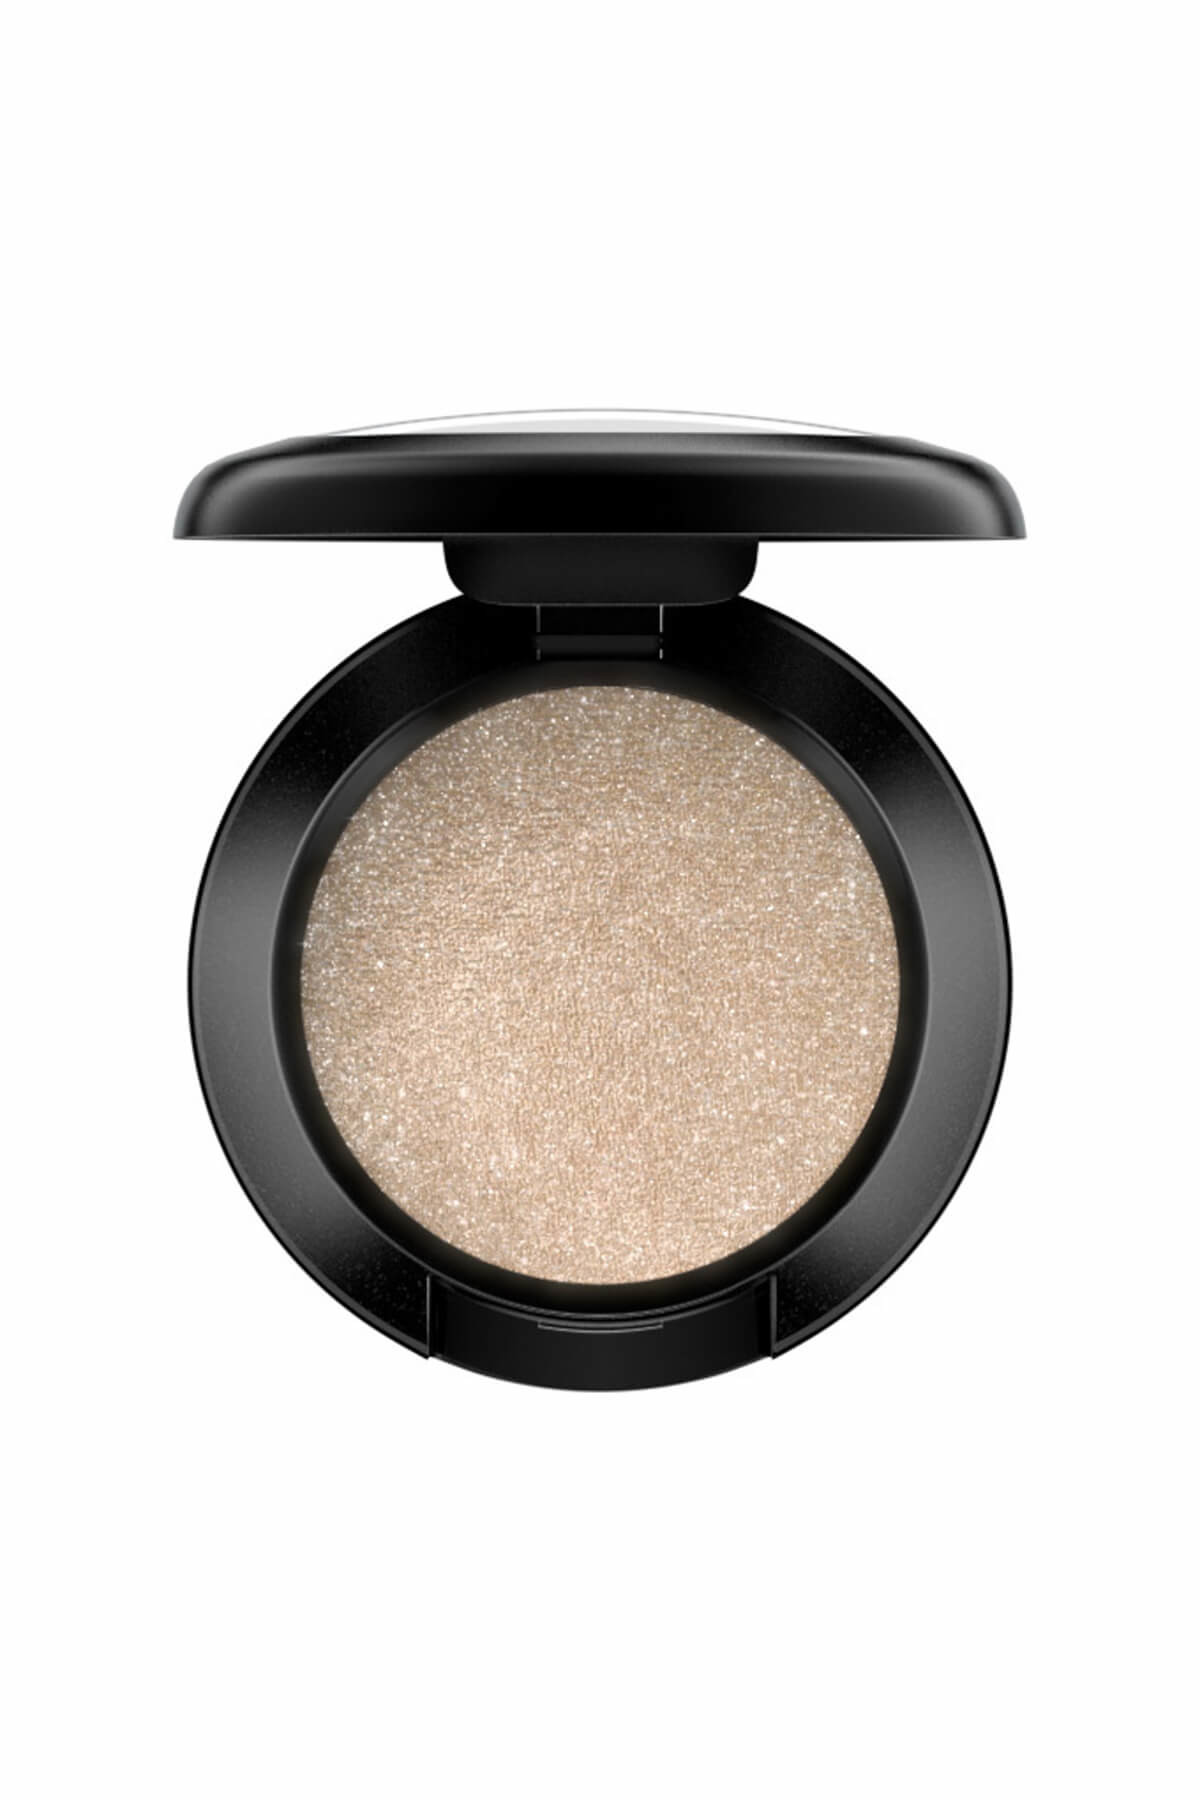 M.A.C Göz Farı - Eye Shadow Retrospeck 1.5 g 773602038800 1